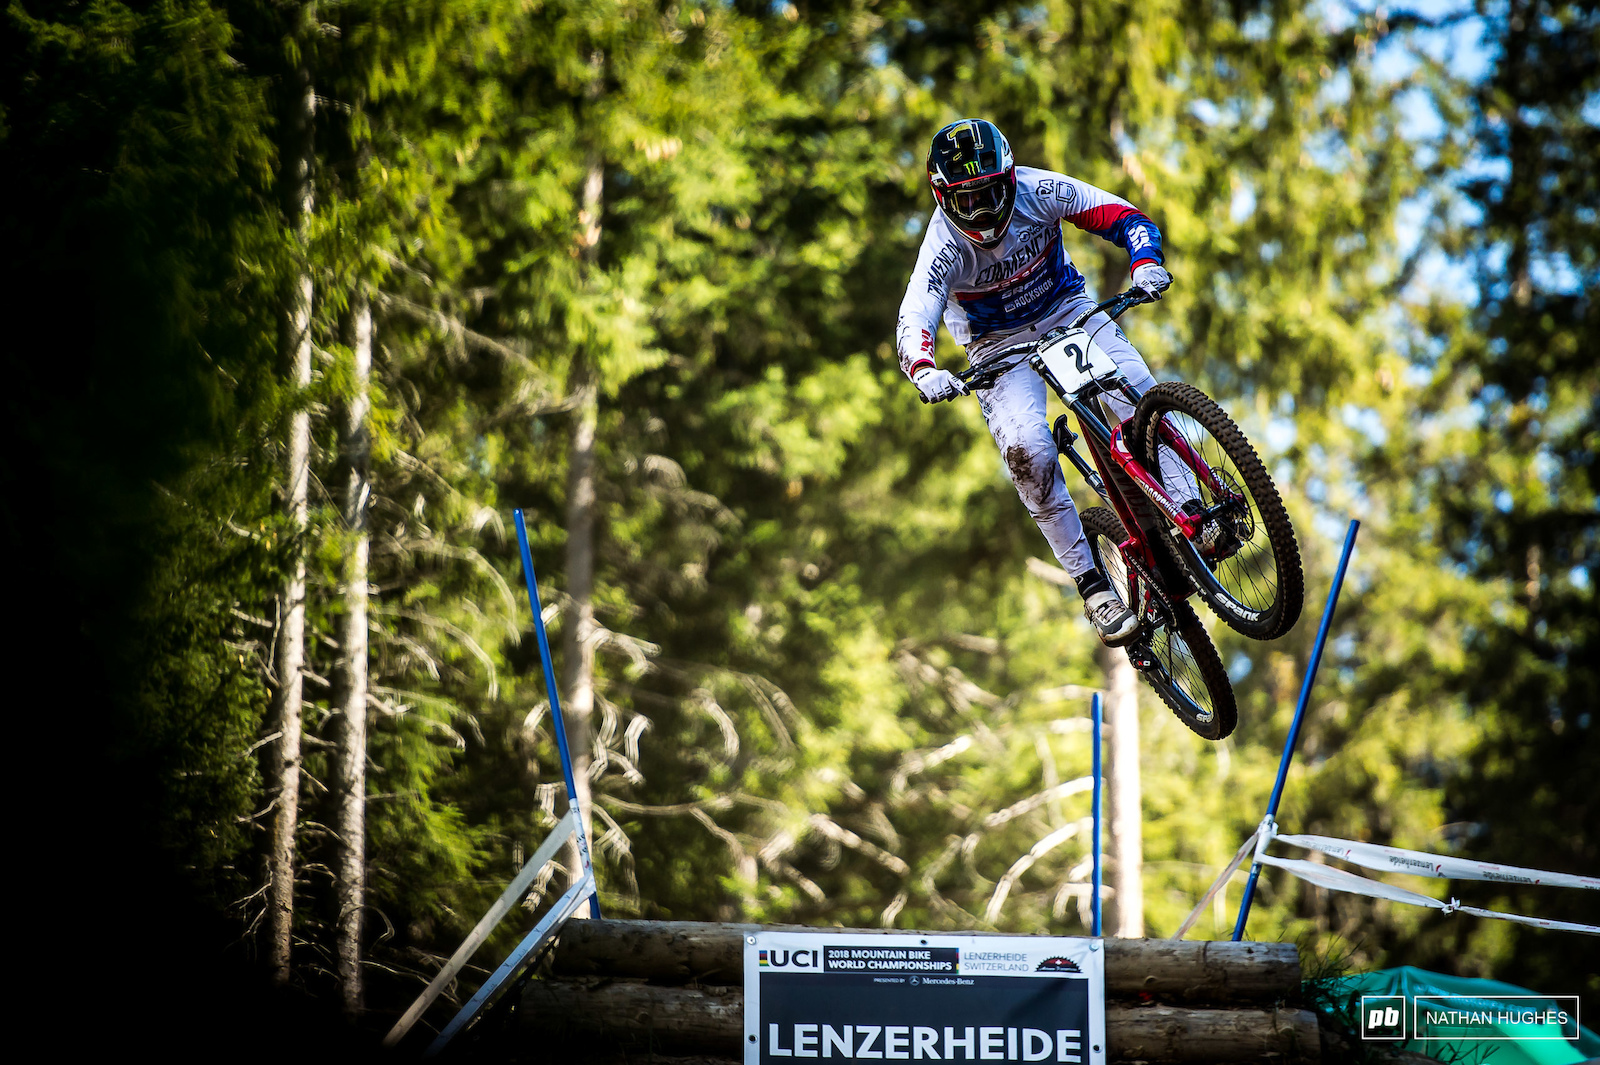 One too many crashes over the weekend spoiled Pierron s hope for gold and he finsihed his run with front flat.